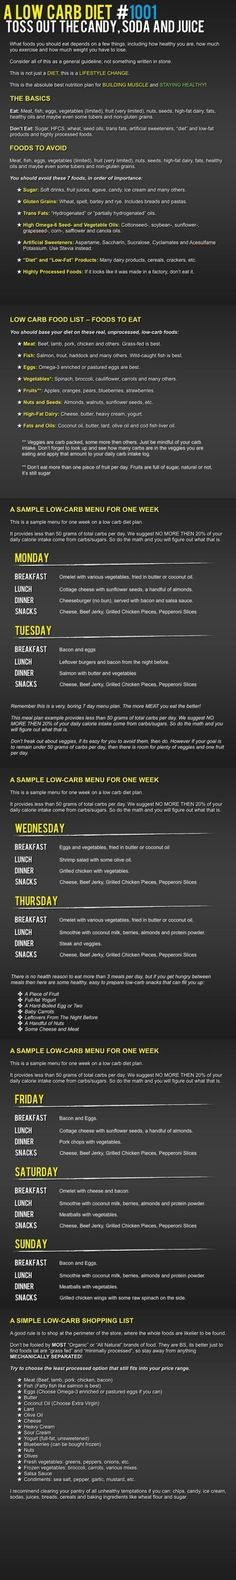 awesome Here is a great graphic for those who like low carb diet. (includes a food list and simple meal plan):